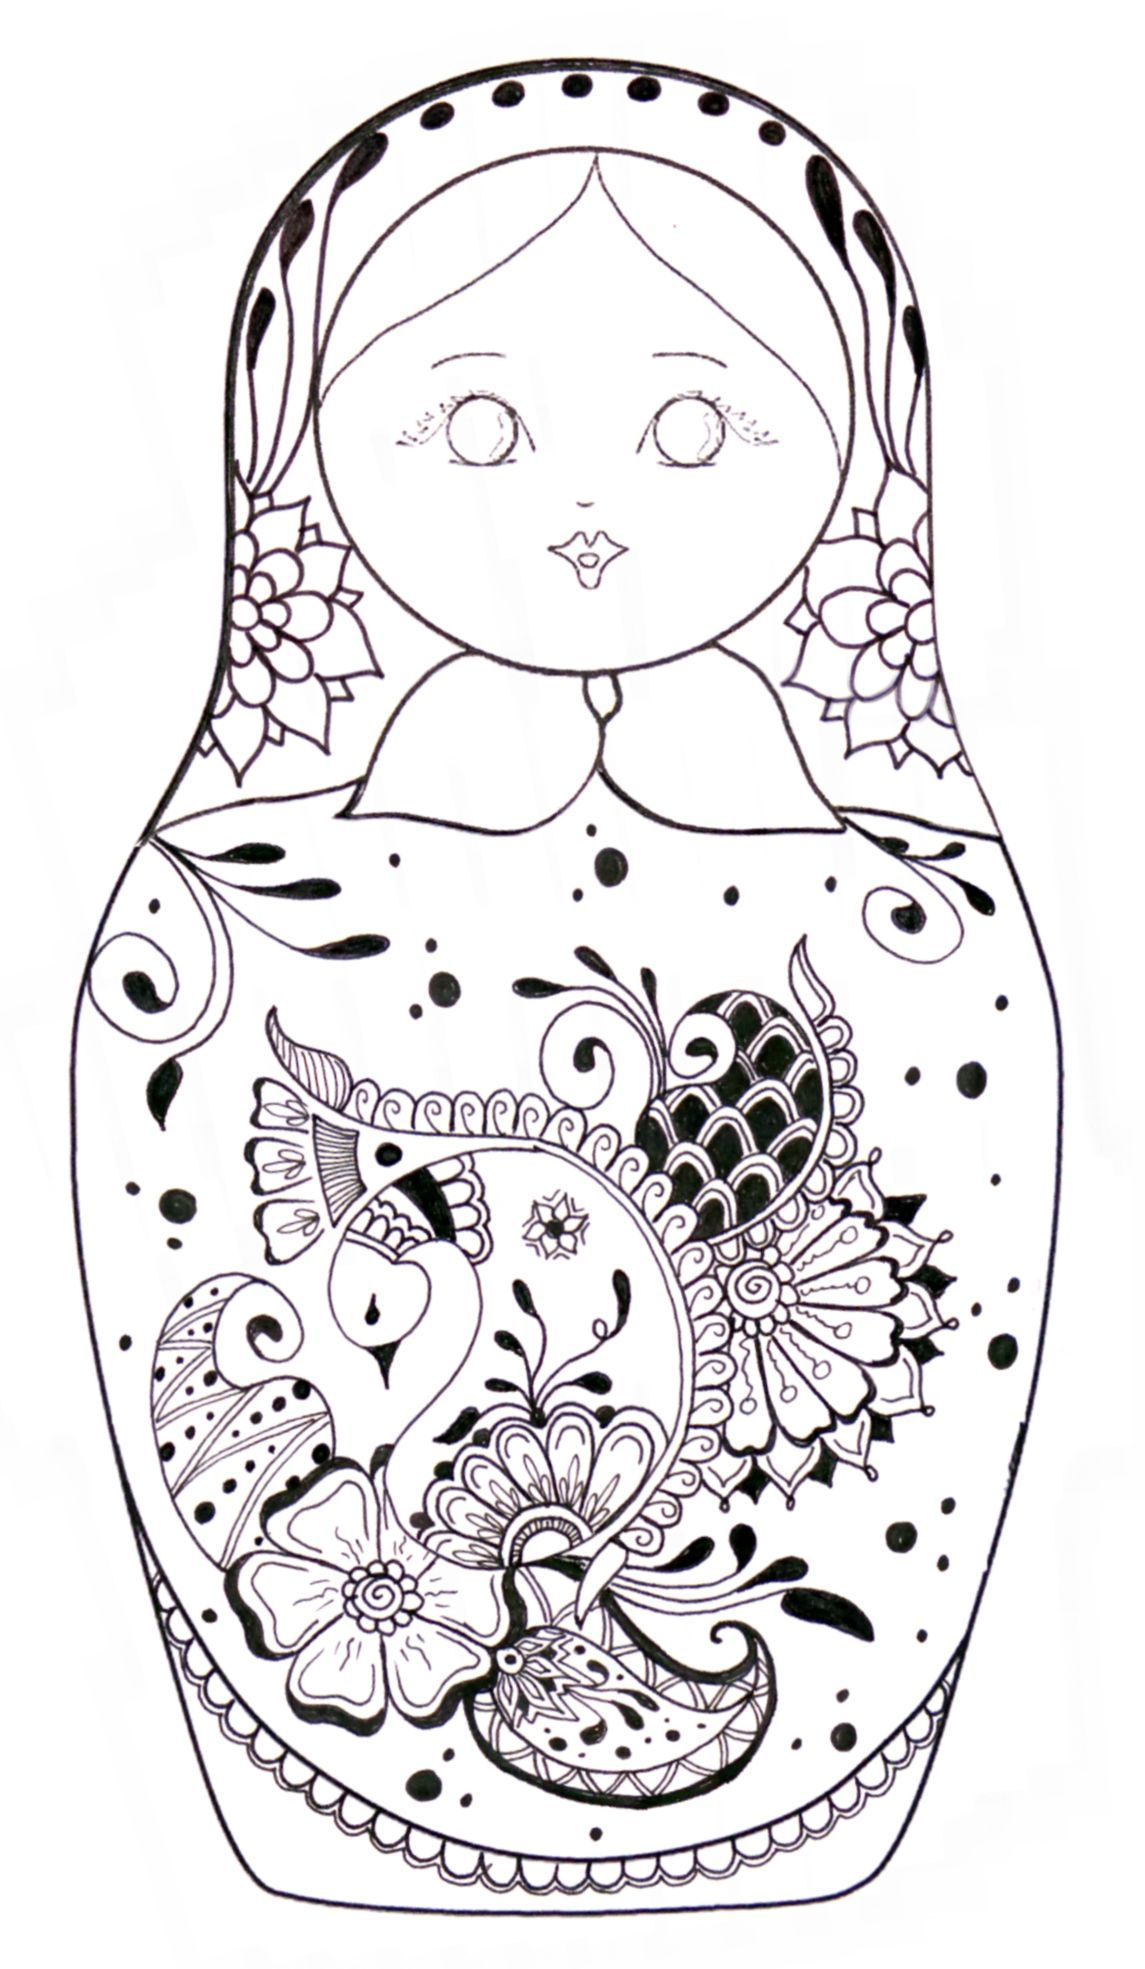 Pin by Becky Thornton on Art Ed Printables | Coloring pages ...